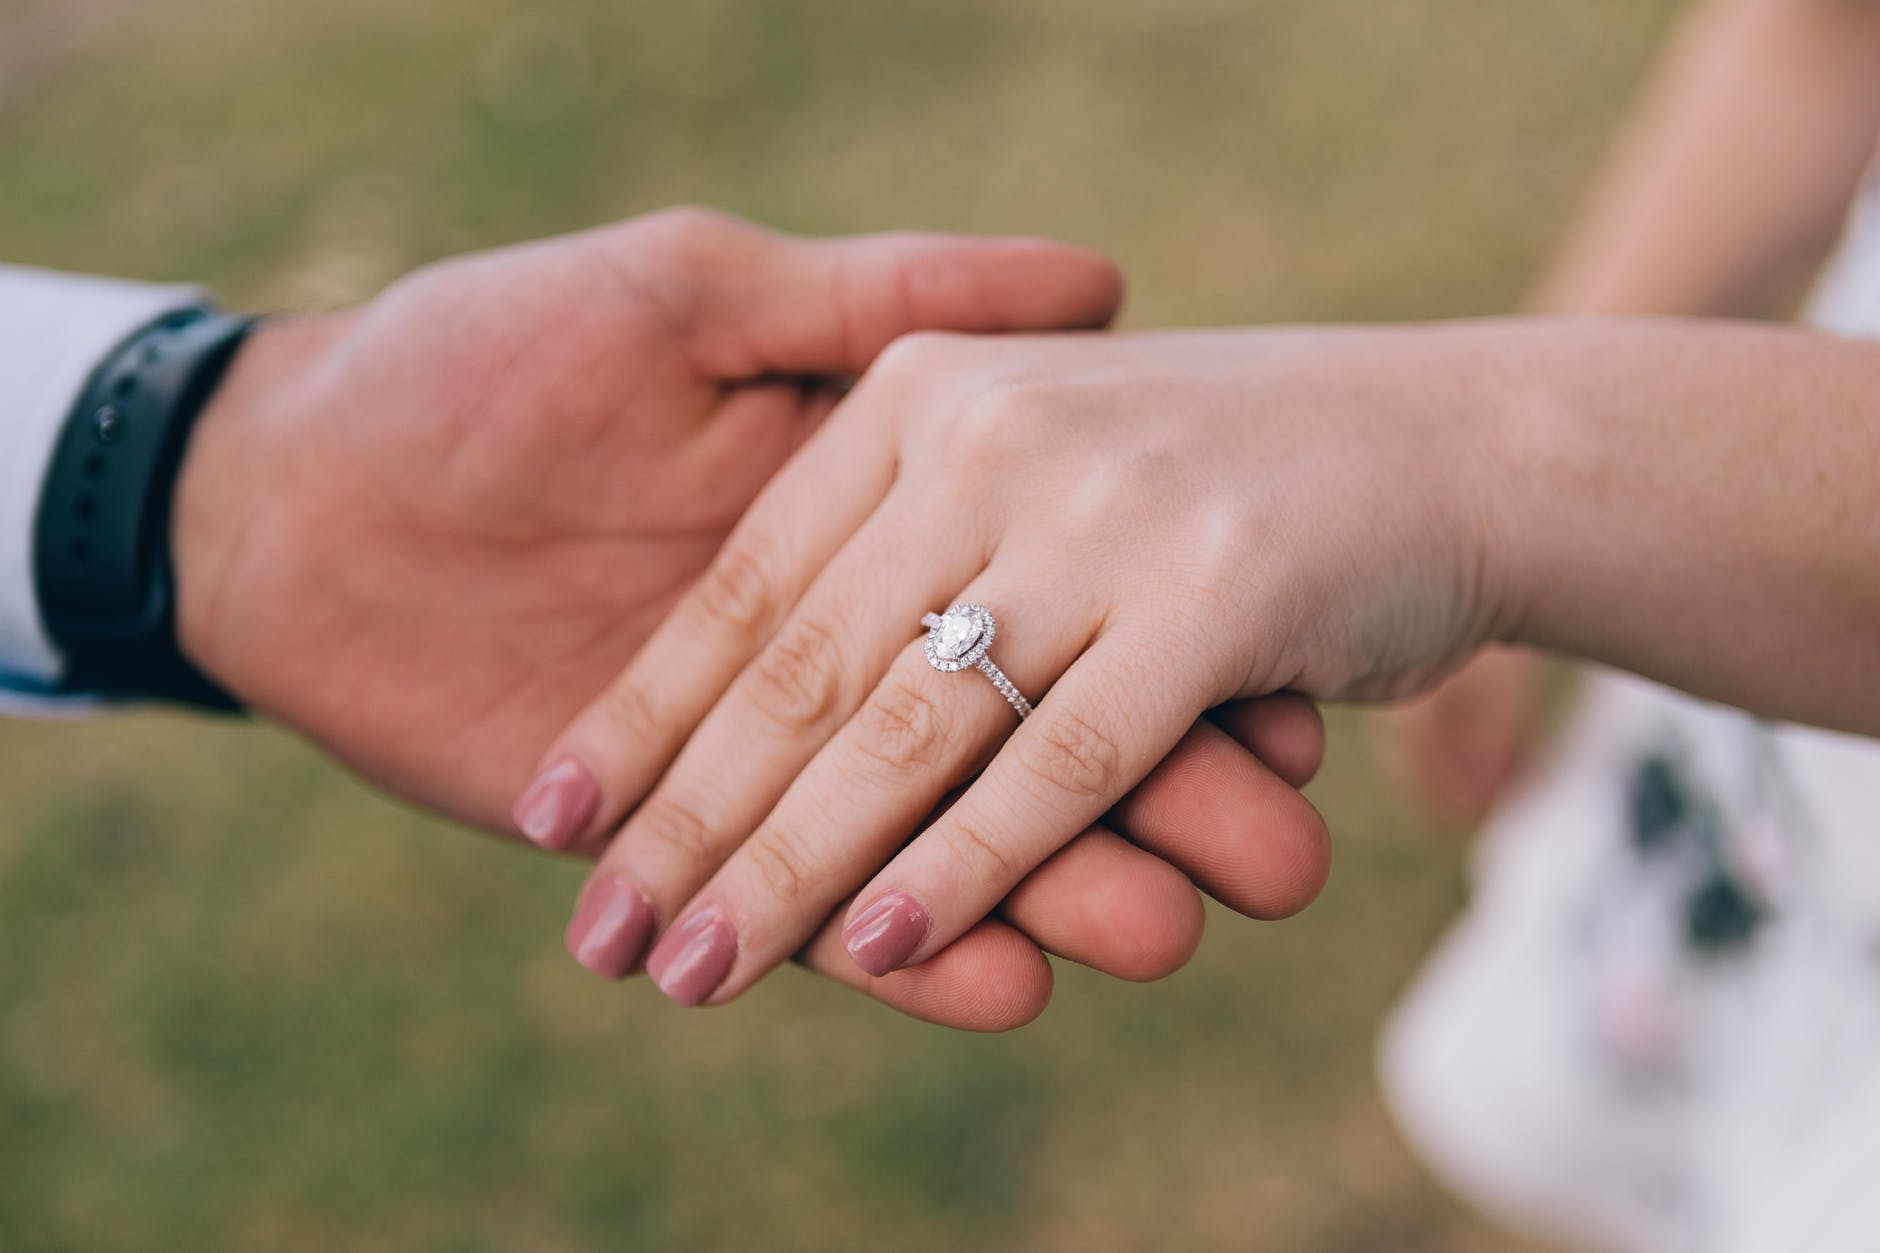 engagement ring worn by the bride to be